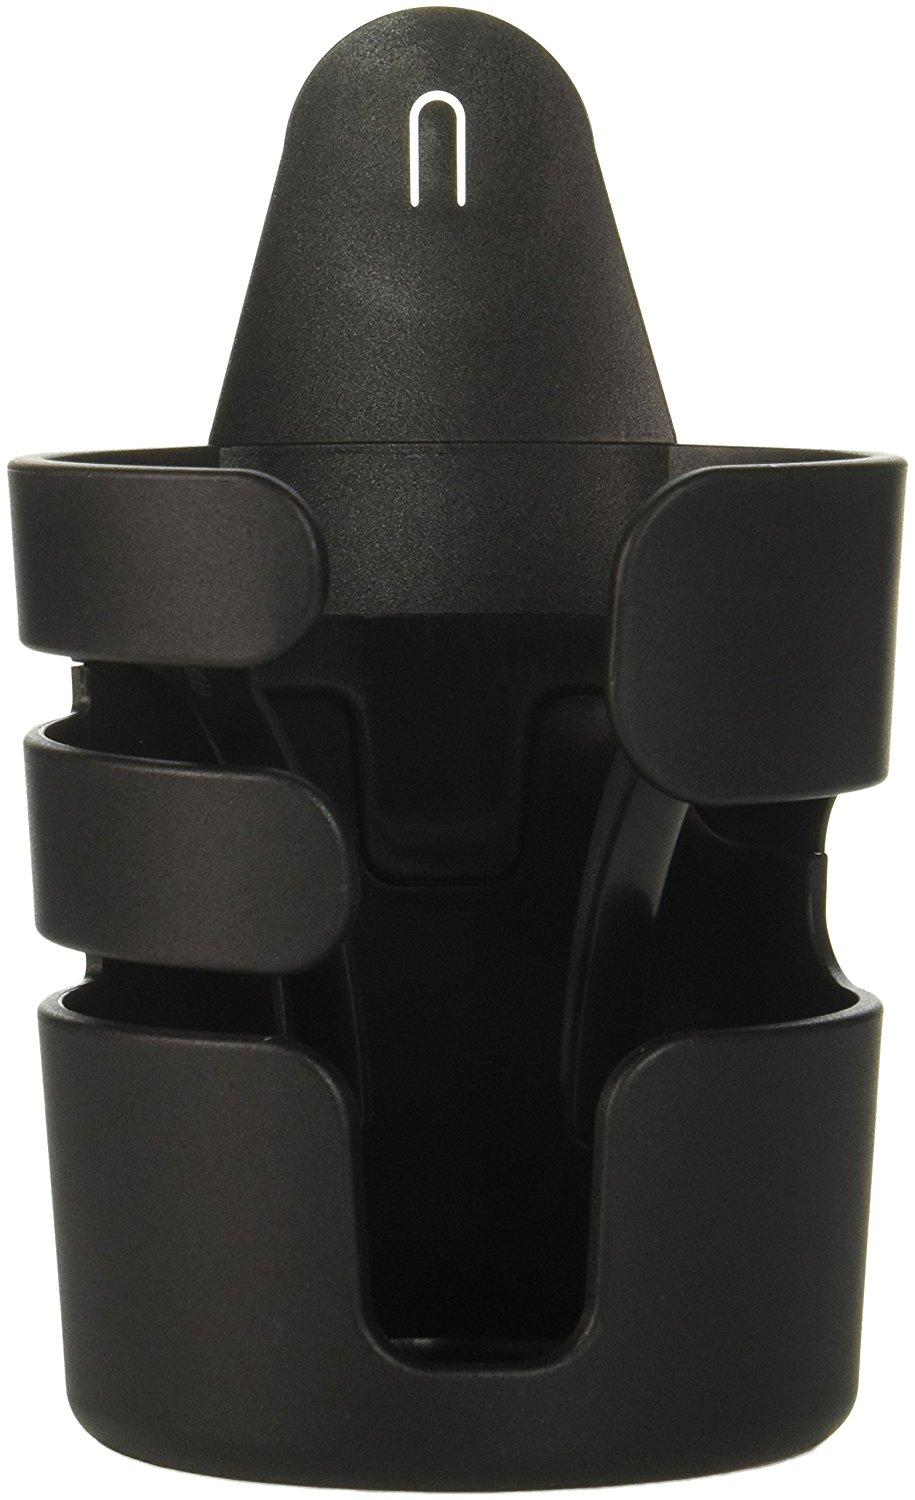 Bugaboo cup holder+ - Bugaboo